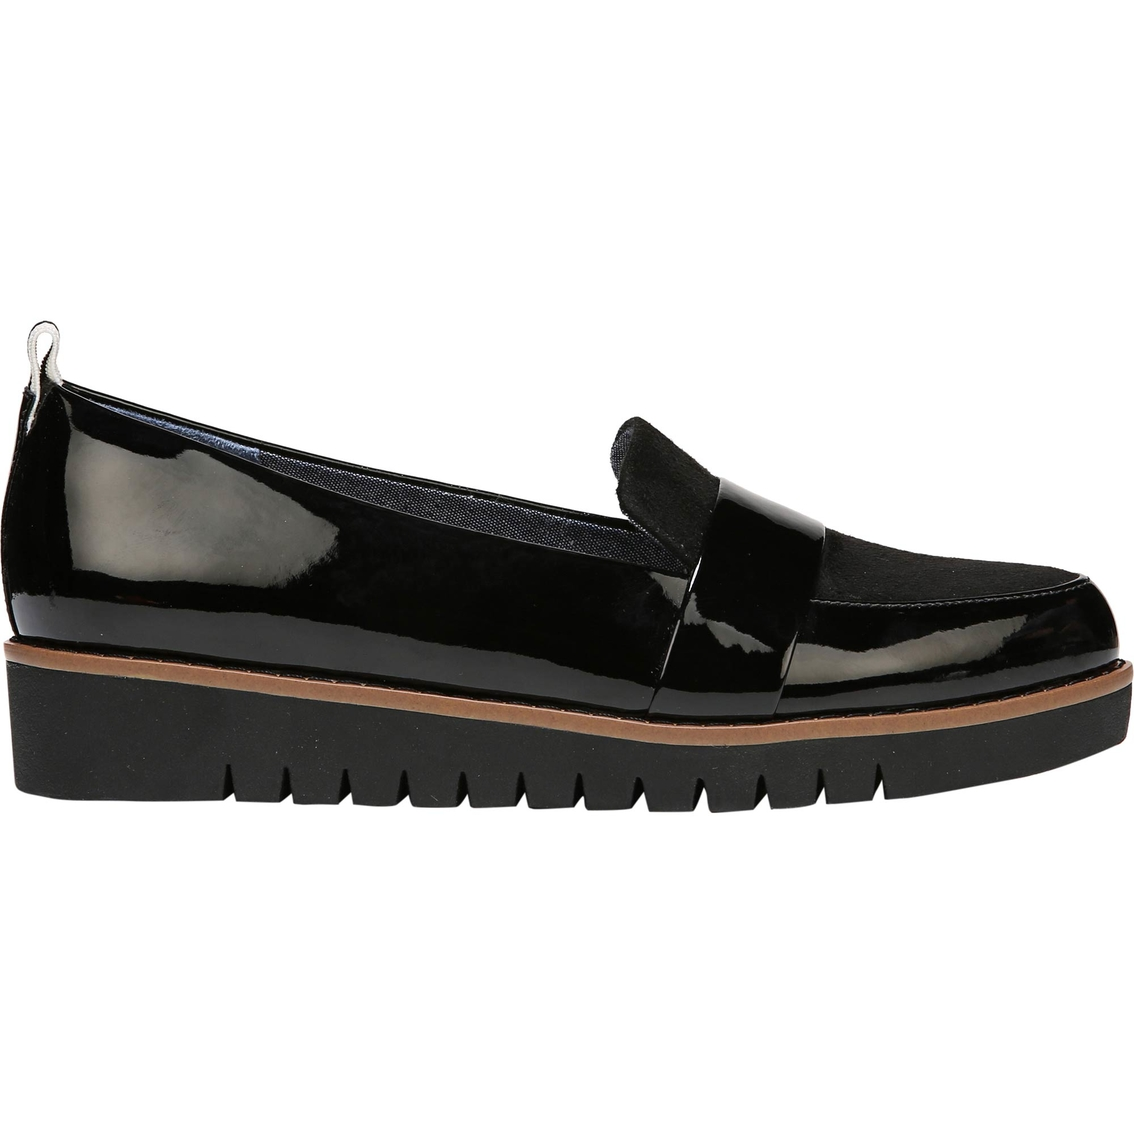 3da7a3761cf Dr. Scholl s Imagined Loafers